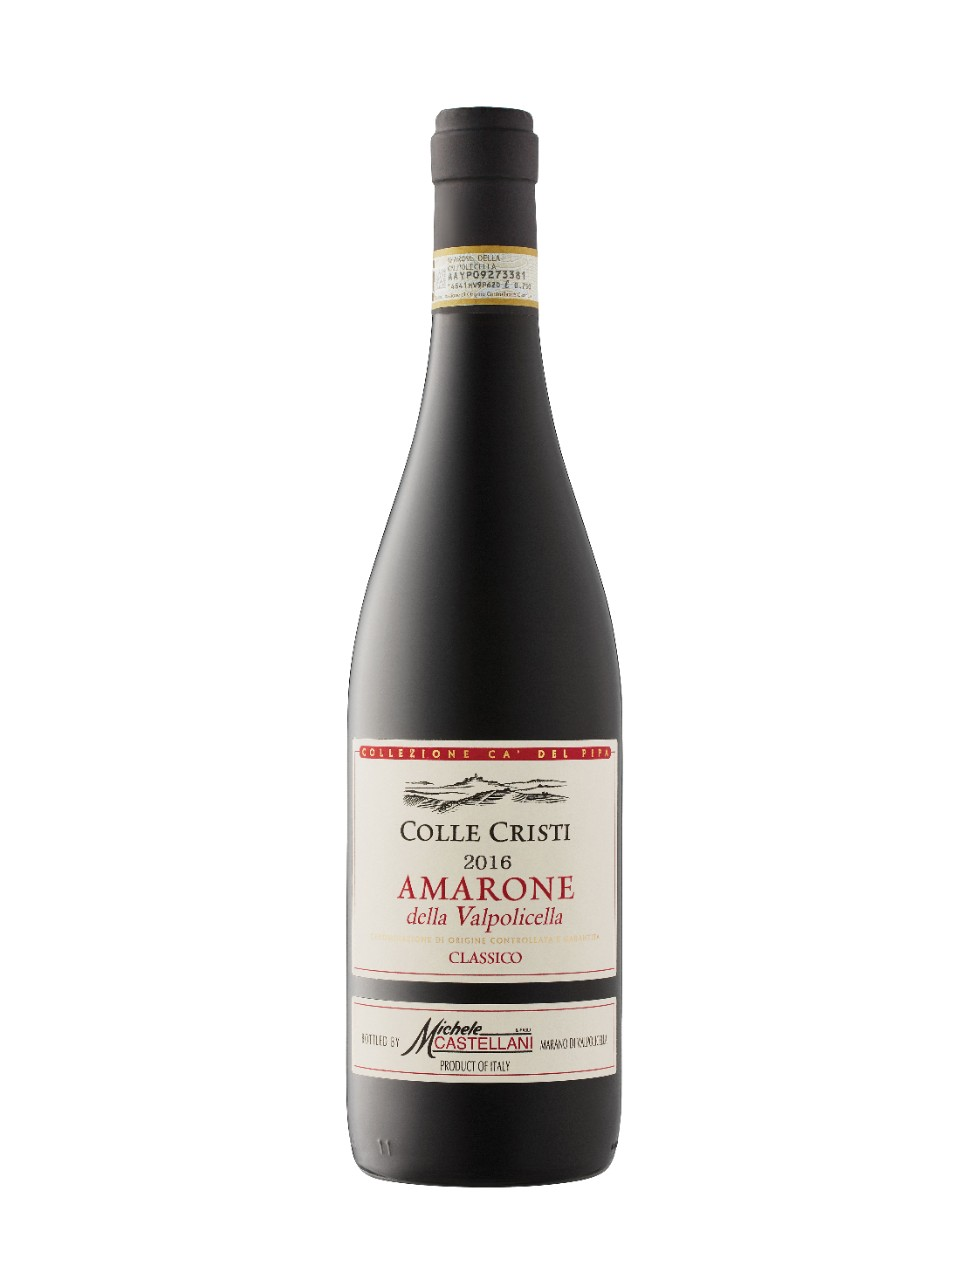 Image for Michele Castellani Colle Cristi Amarone della Valpolicella Classico 2013 from LCBO